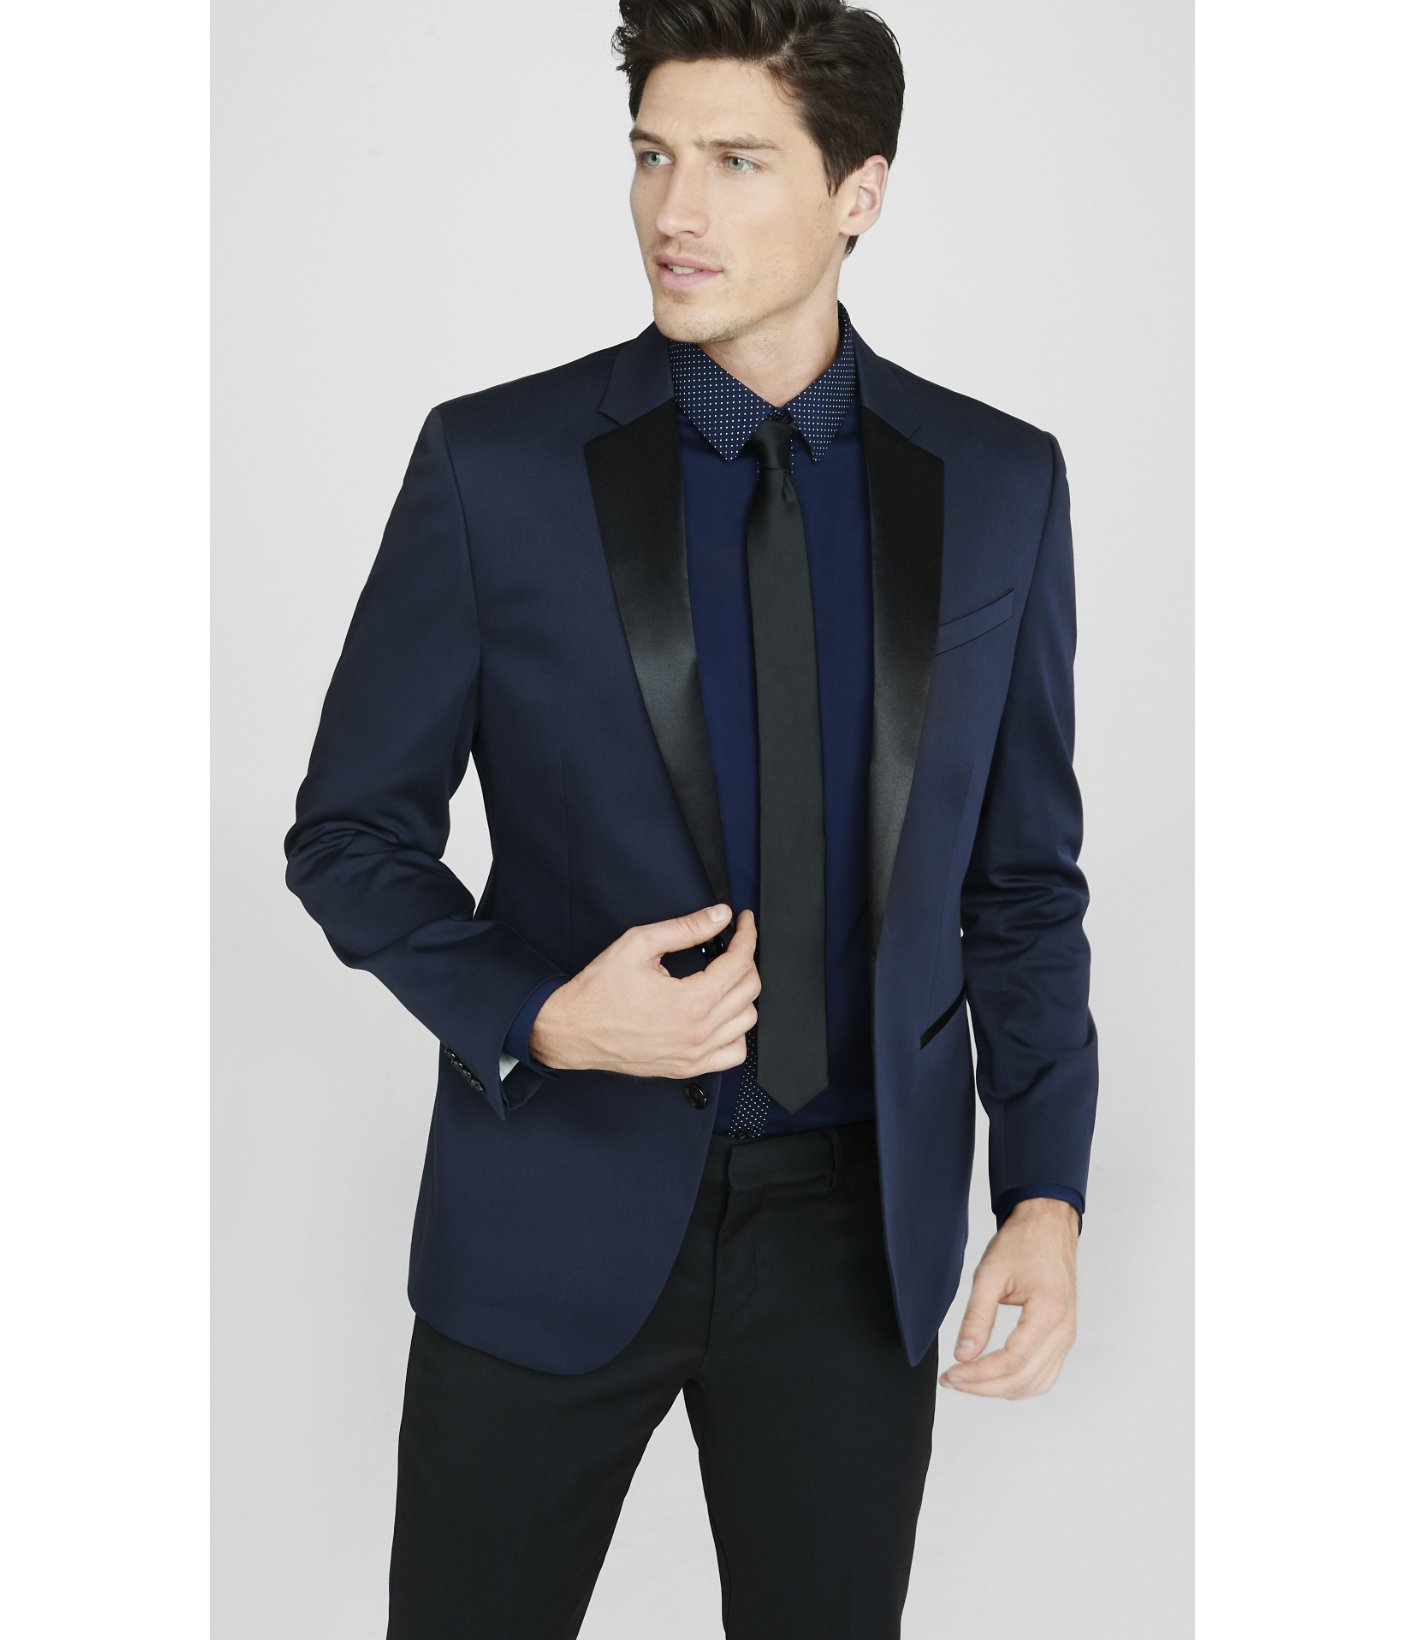 This elegant tuxedo by Calvin Klein features satin edging and details throughout, a modern, trim fit, and smooth, flat-front slacks% newuz.tk-button newuz.tk lapel with satin newuz.tk covered newuz.tk-front slacks, lined to the newuz.tked for tailoring to your newuz.tk newuz.tk newuz.tk Clean Only.